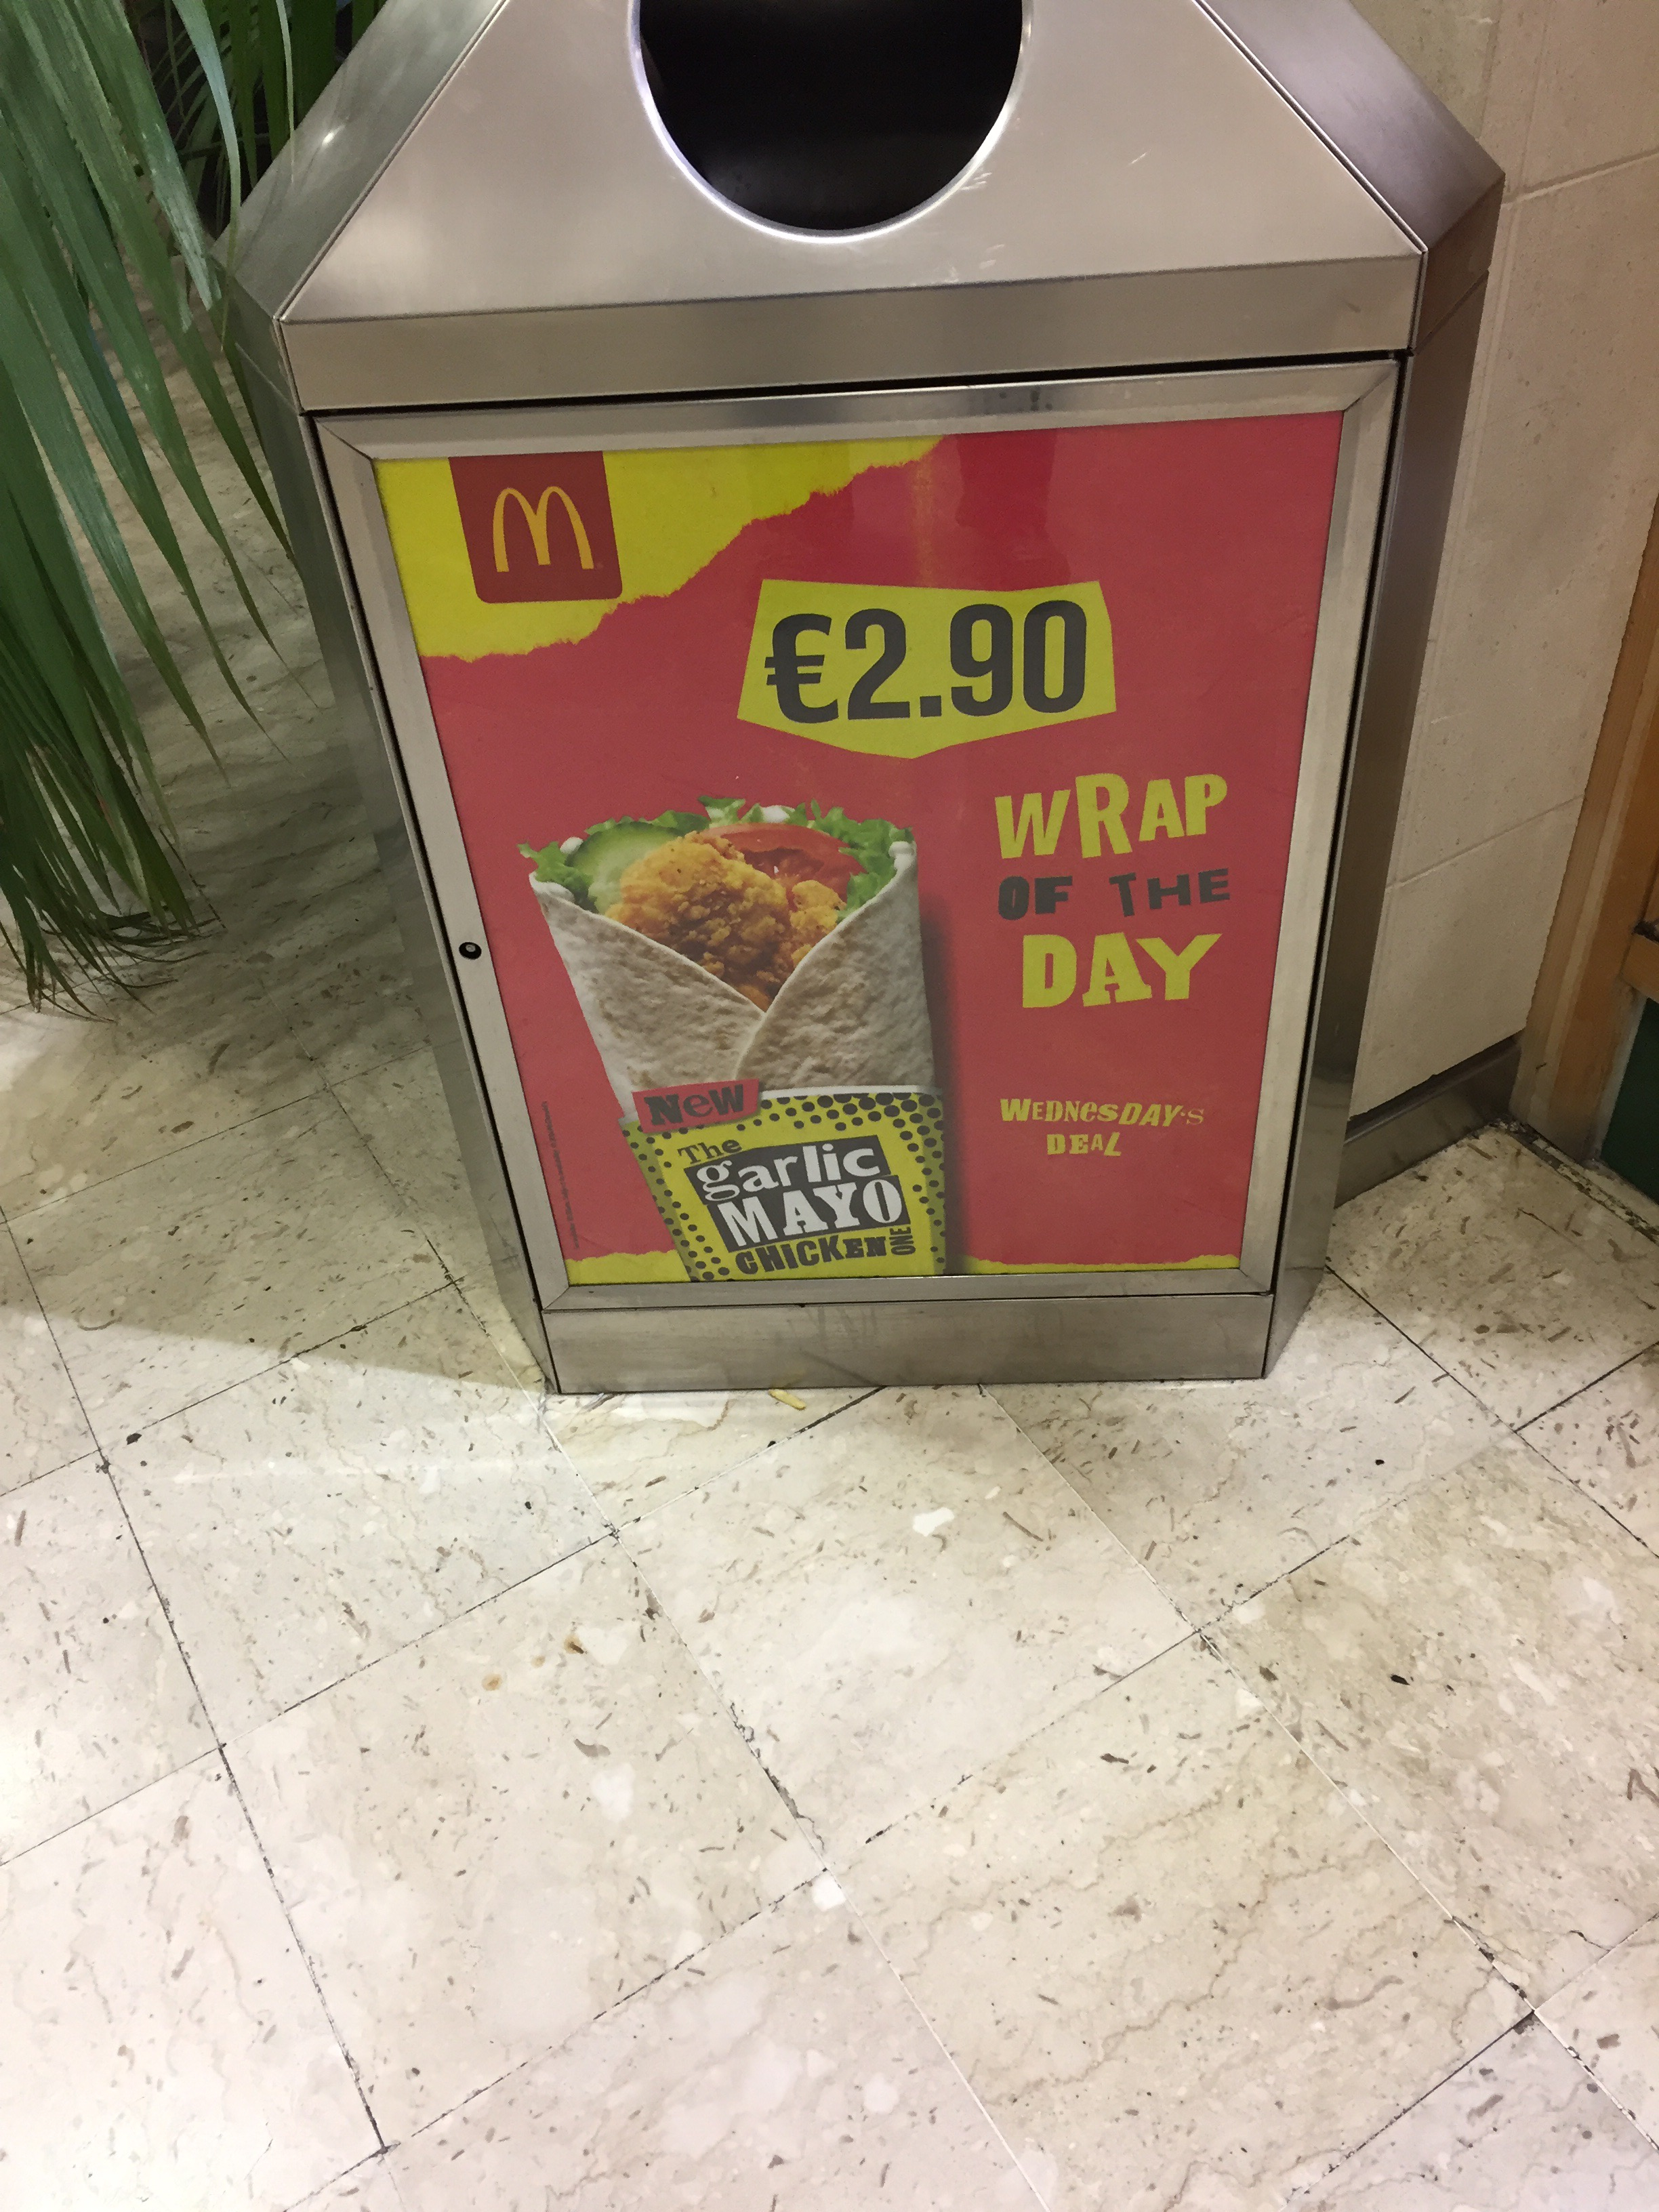 McDonald's – €2.90 wrap of the day